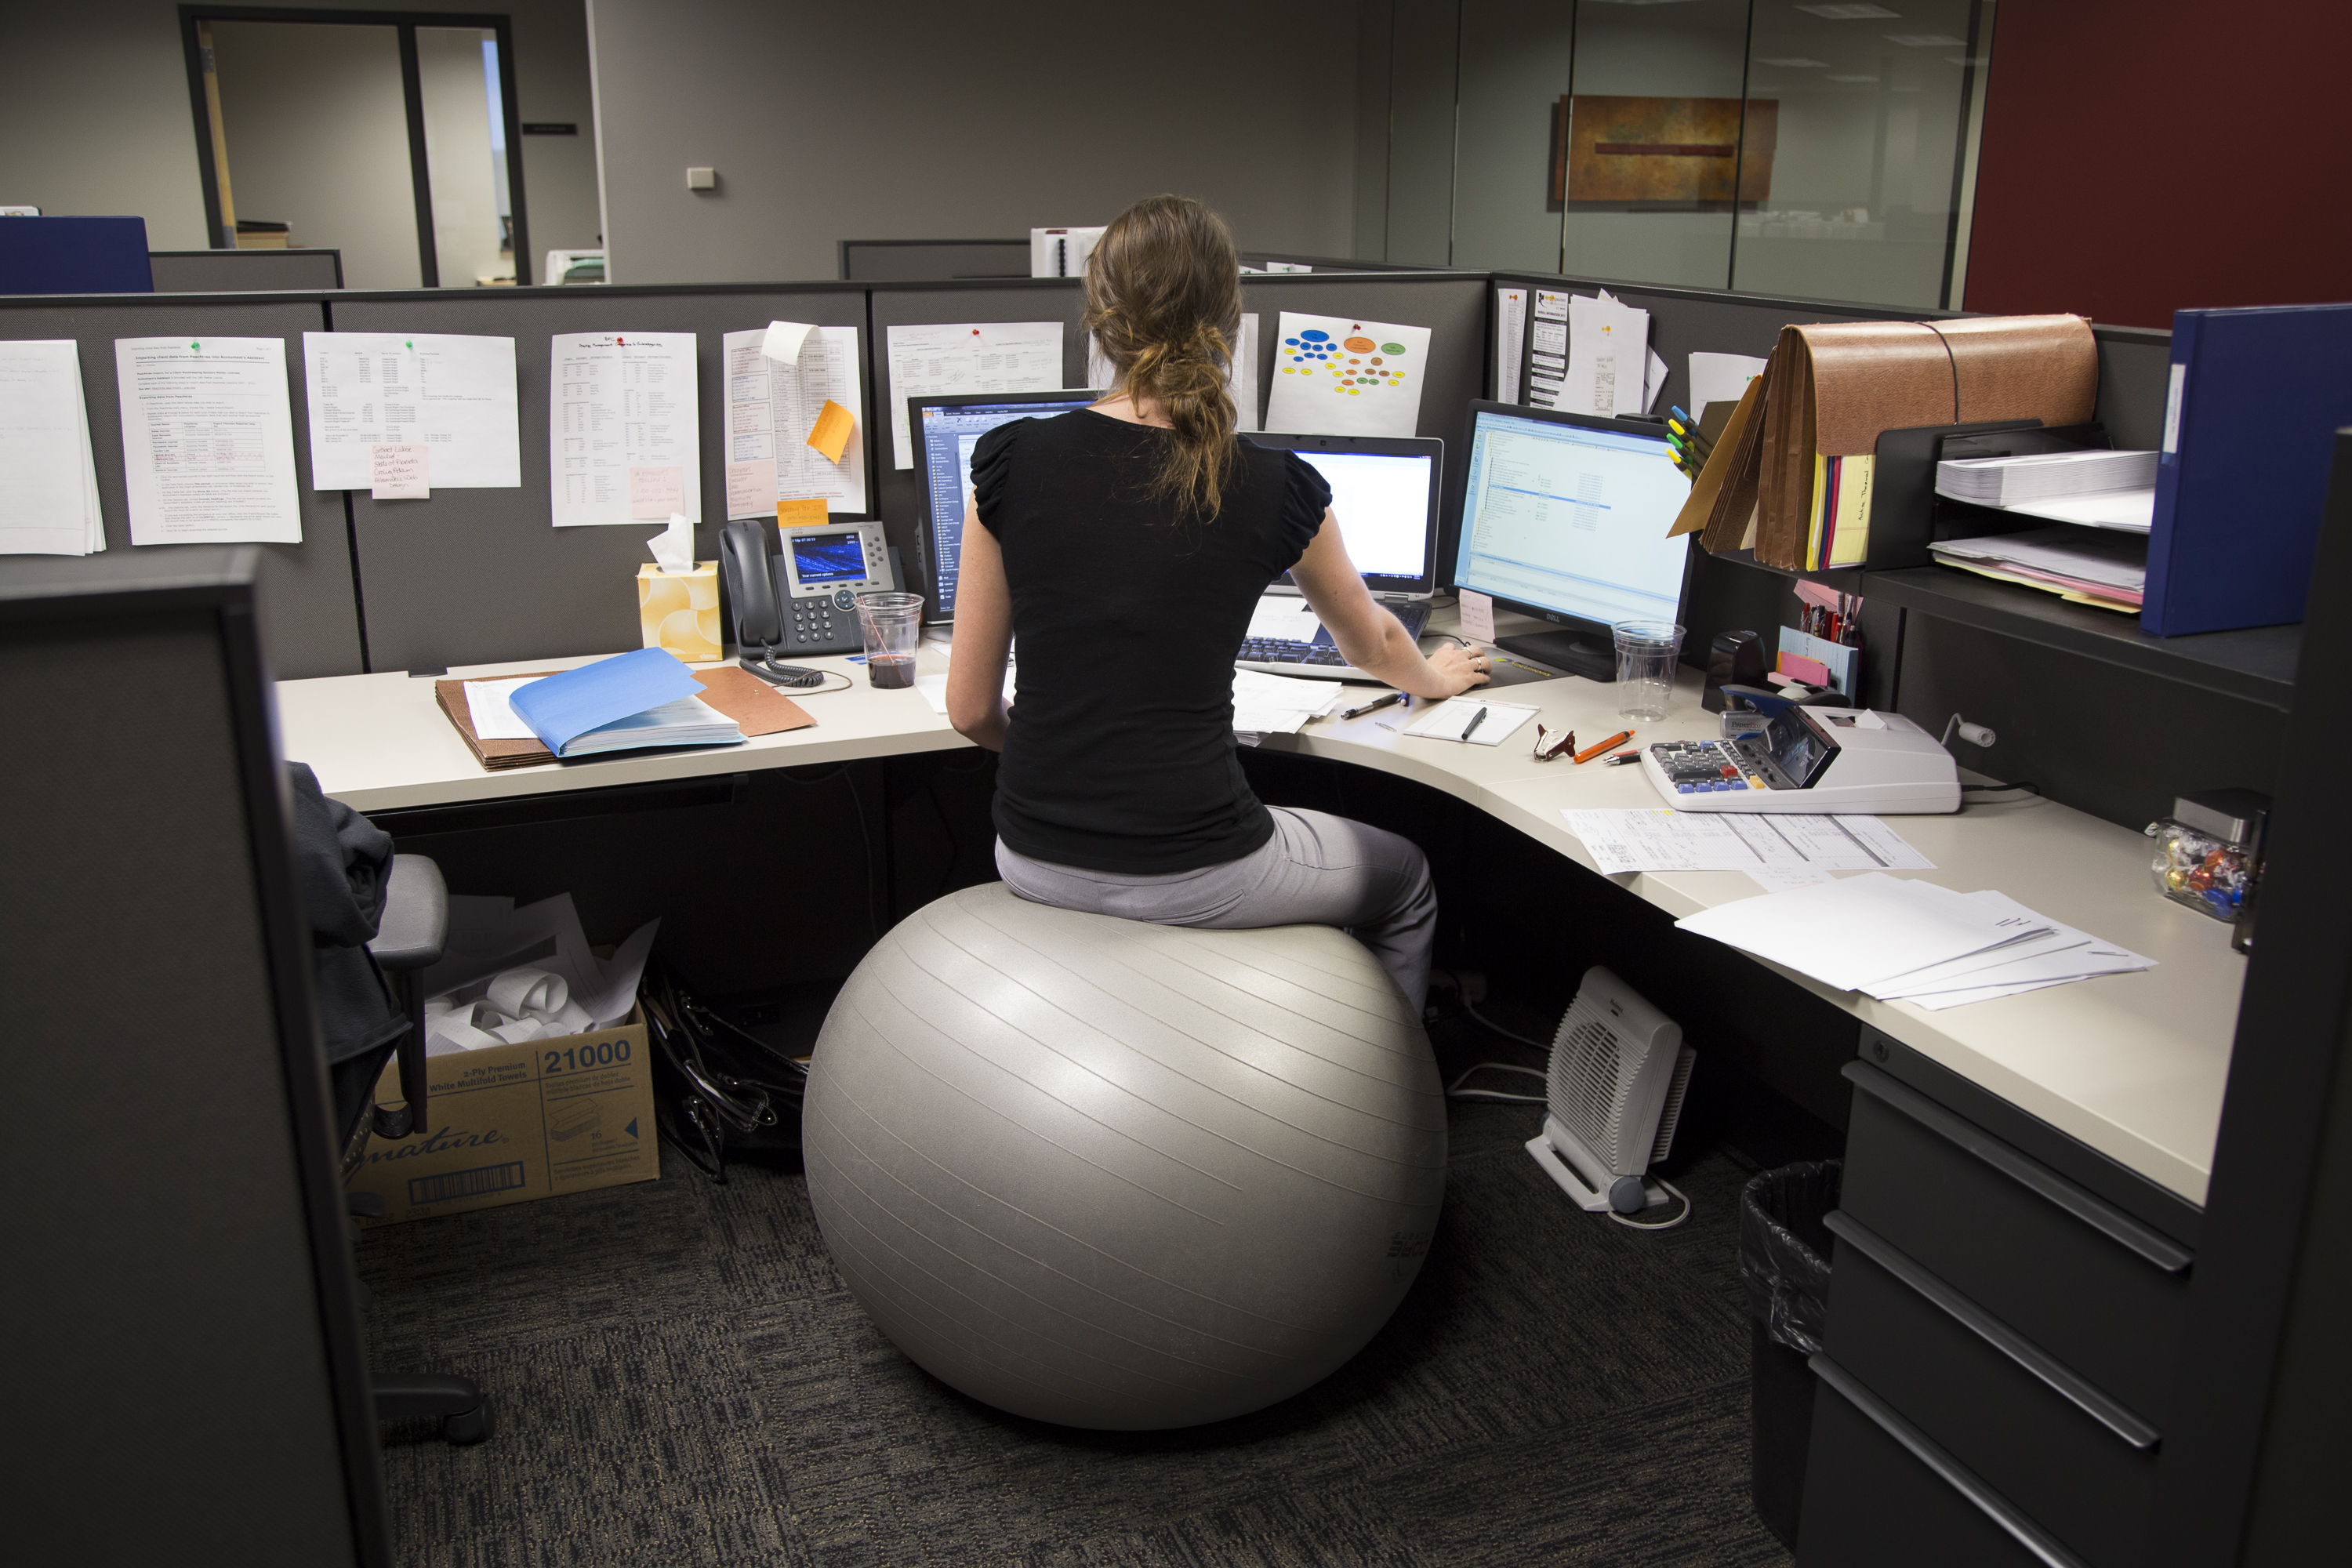 High Quality Sit Stand Workstations, Treadmill Desks, Isometric Ball Chairs, And Other  Alternatives To More Traditional Office Equipment Are Making Their Way Into  ...